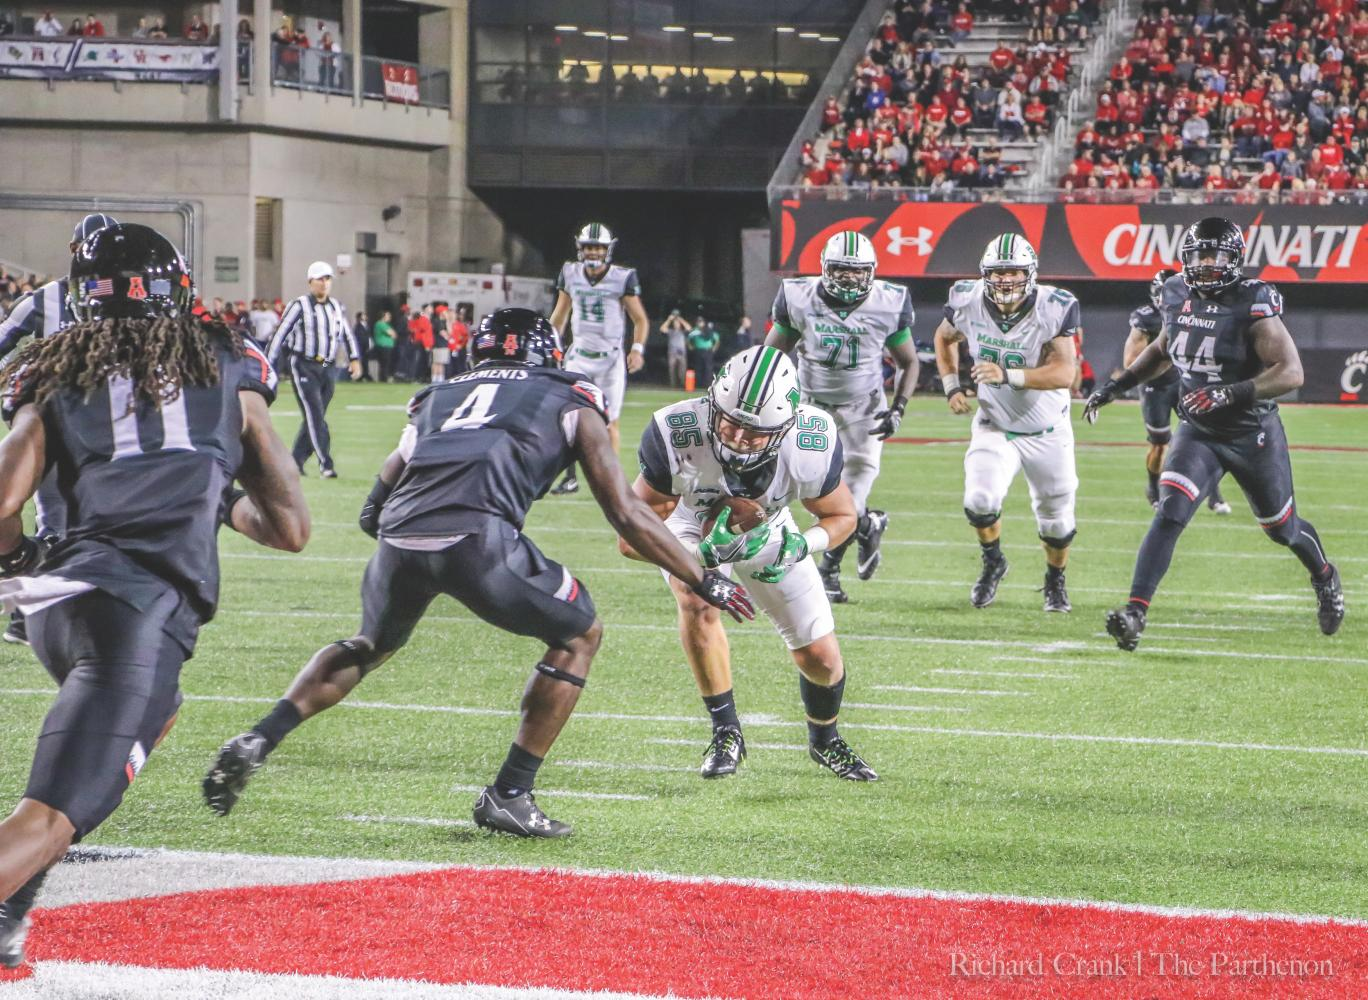 Senior tight end Ryan Yurachek (85) lowers his shoulder on his way to score a touchdown against the Cincinnati Bearcats in Nippert Stadium Saturday. Yurachek finished with three touchdowns on six receptions and 77 yards.